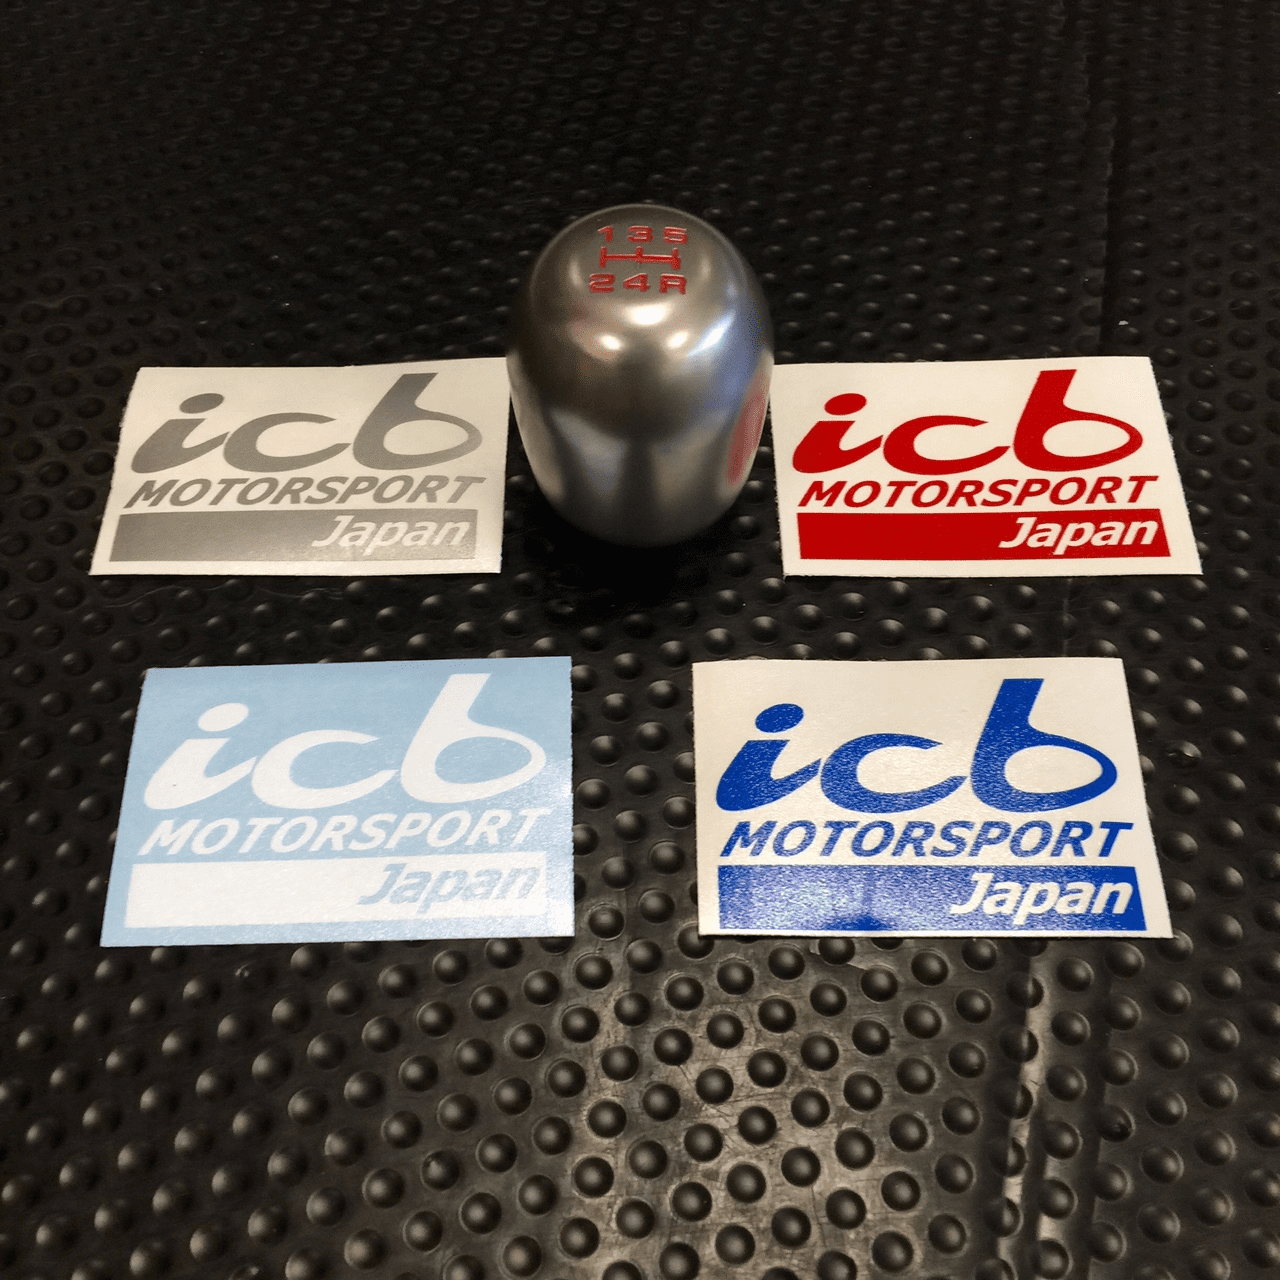 "ICB MOTORSPORT JAPAN 2.5"" Small Decals Various Colors FREE SHIPPING"